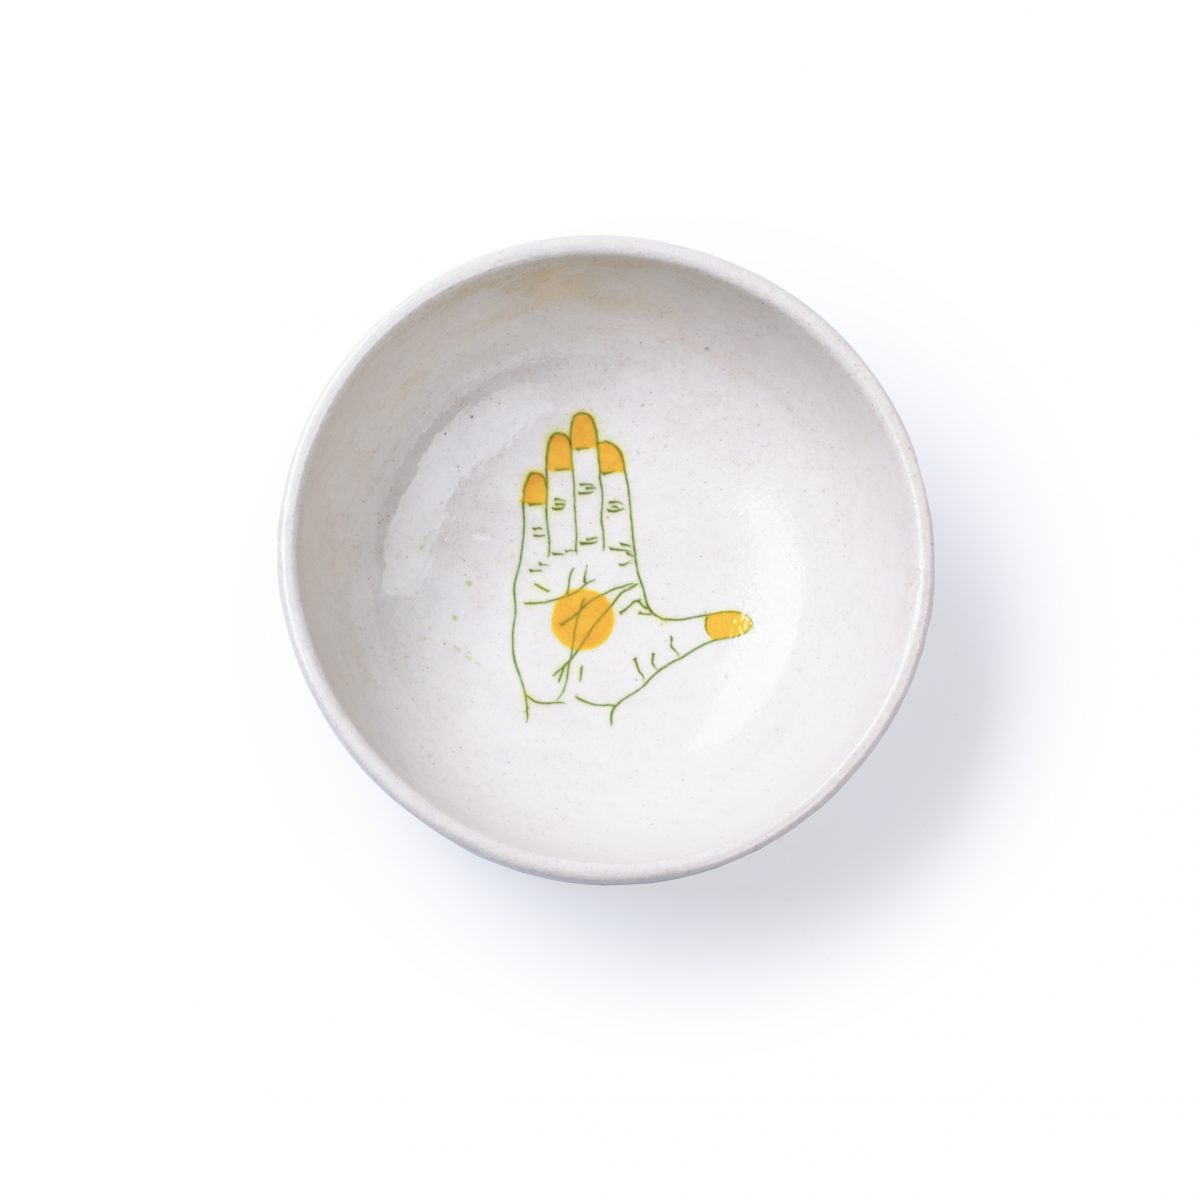 Blue Pottery_ Bowl S yellow by Makkink & Bey